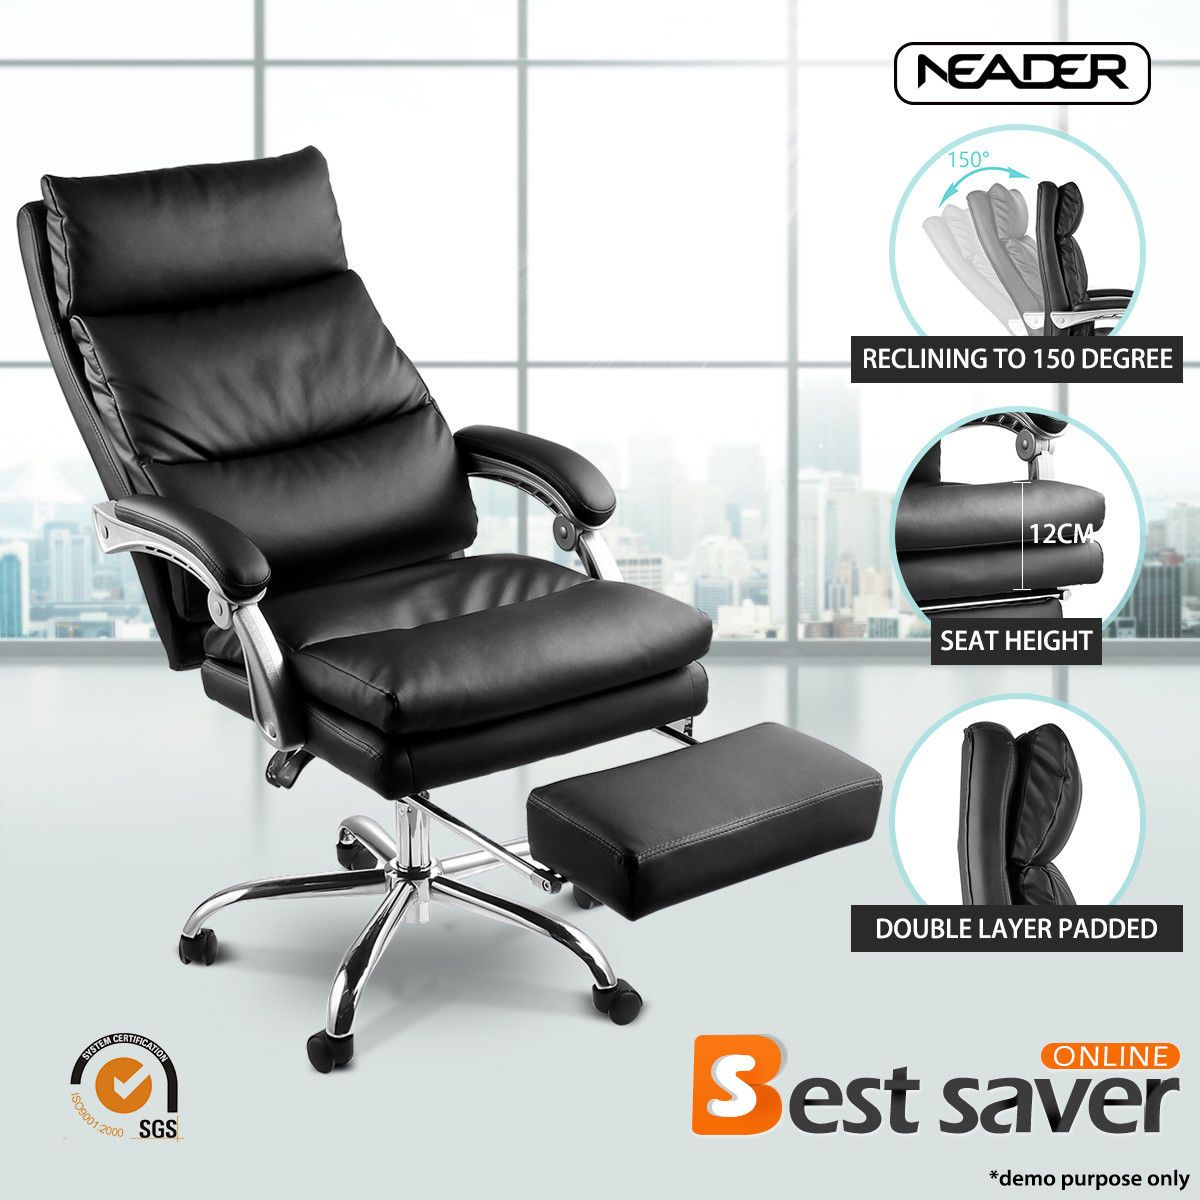 Neader Executive Chair Pu Leather Luxury Reclining Office Chair W